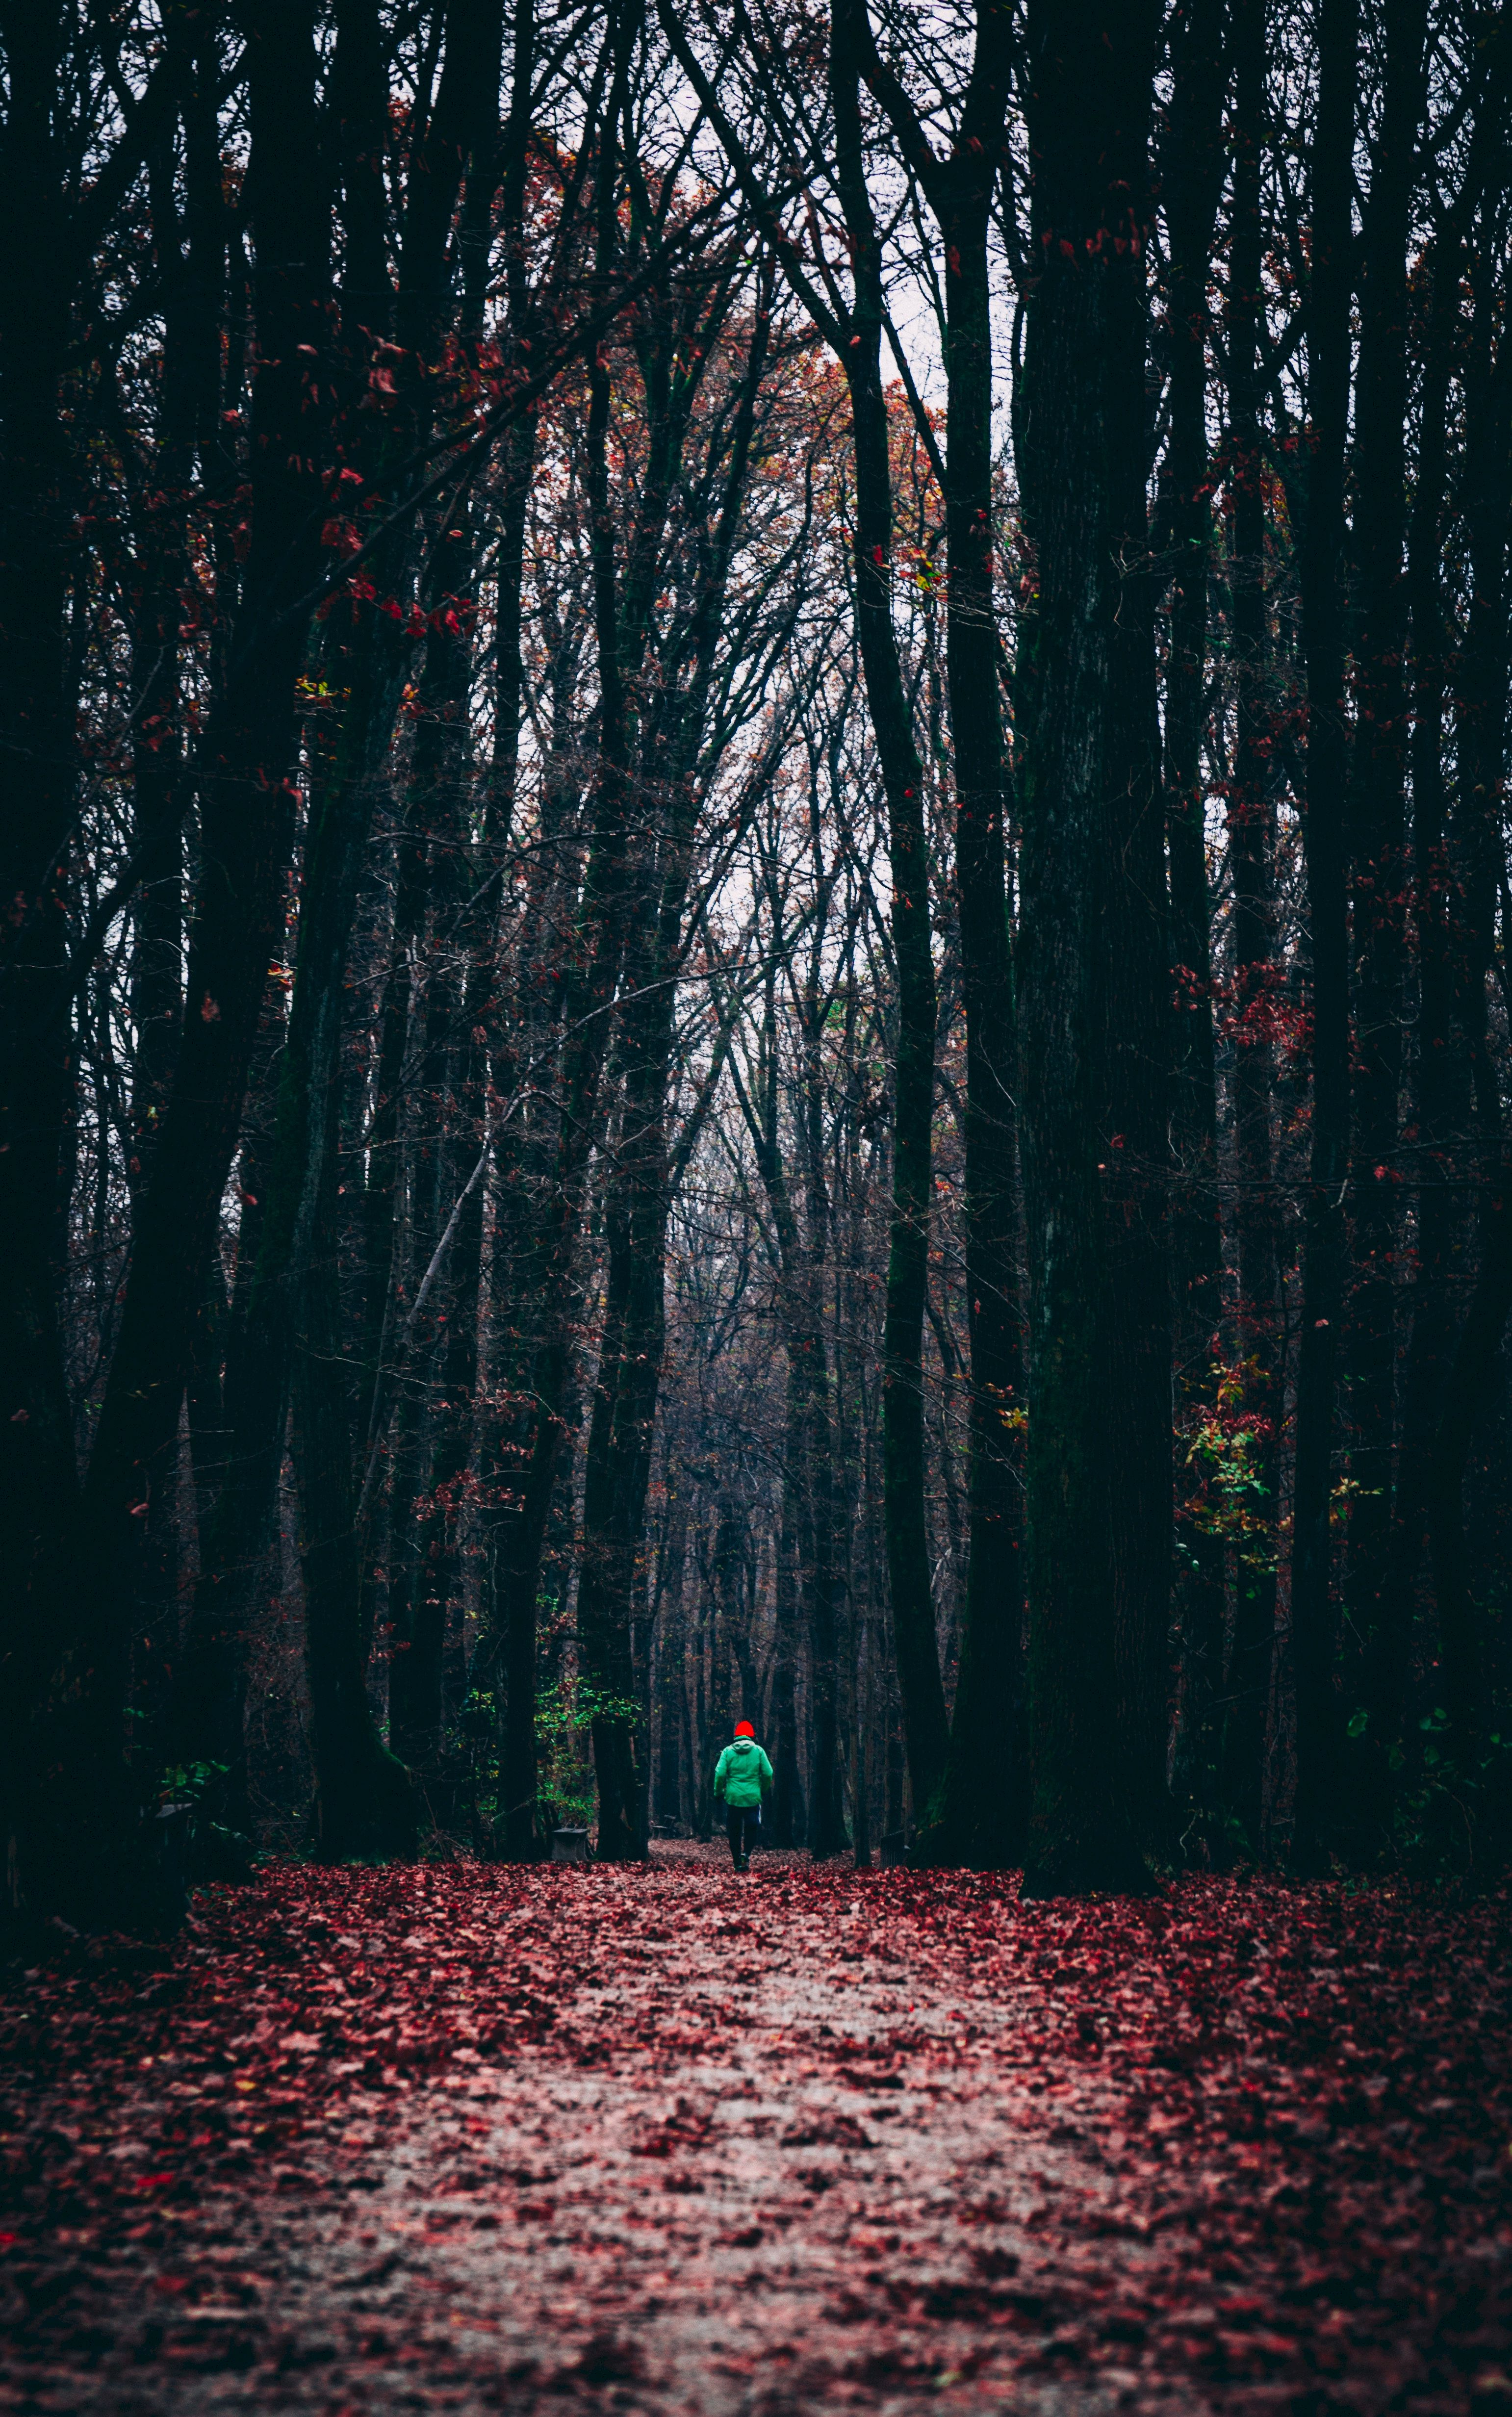 134305 Screensavers and Wallpapers Human for phone. Download Nature, Autumn, Forest, Foliage, Human, Person, Alone, Lonely, Run, Running pictures for free